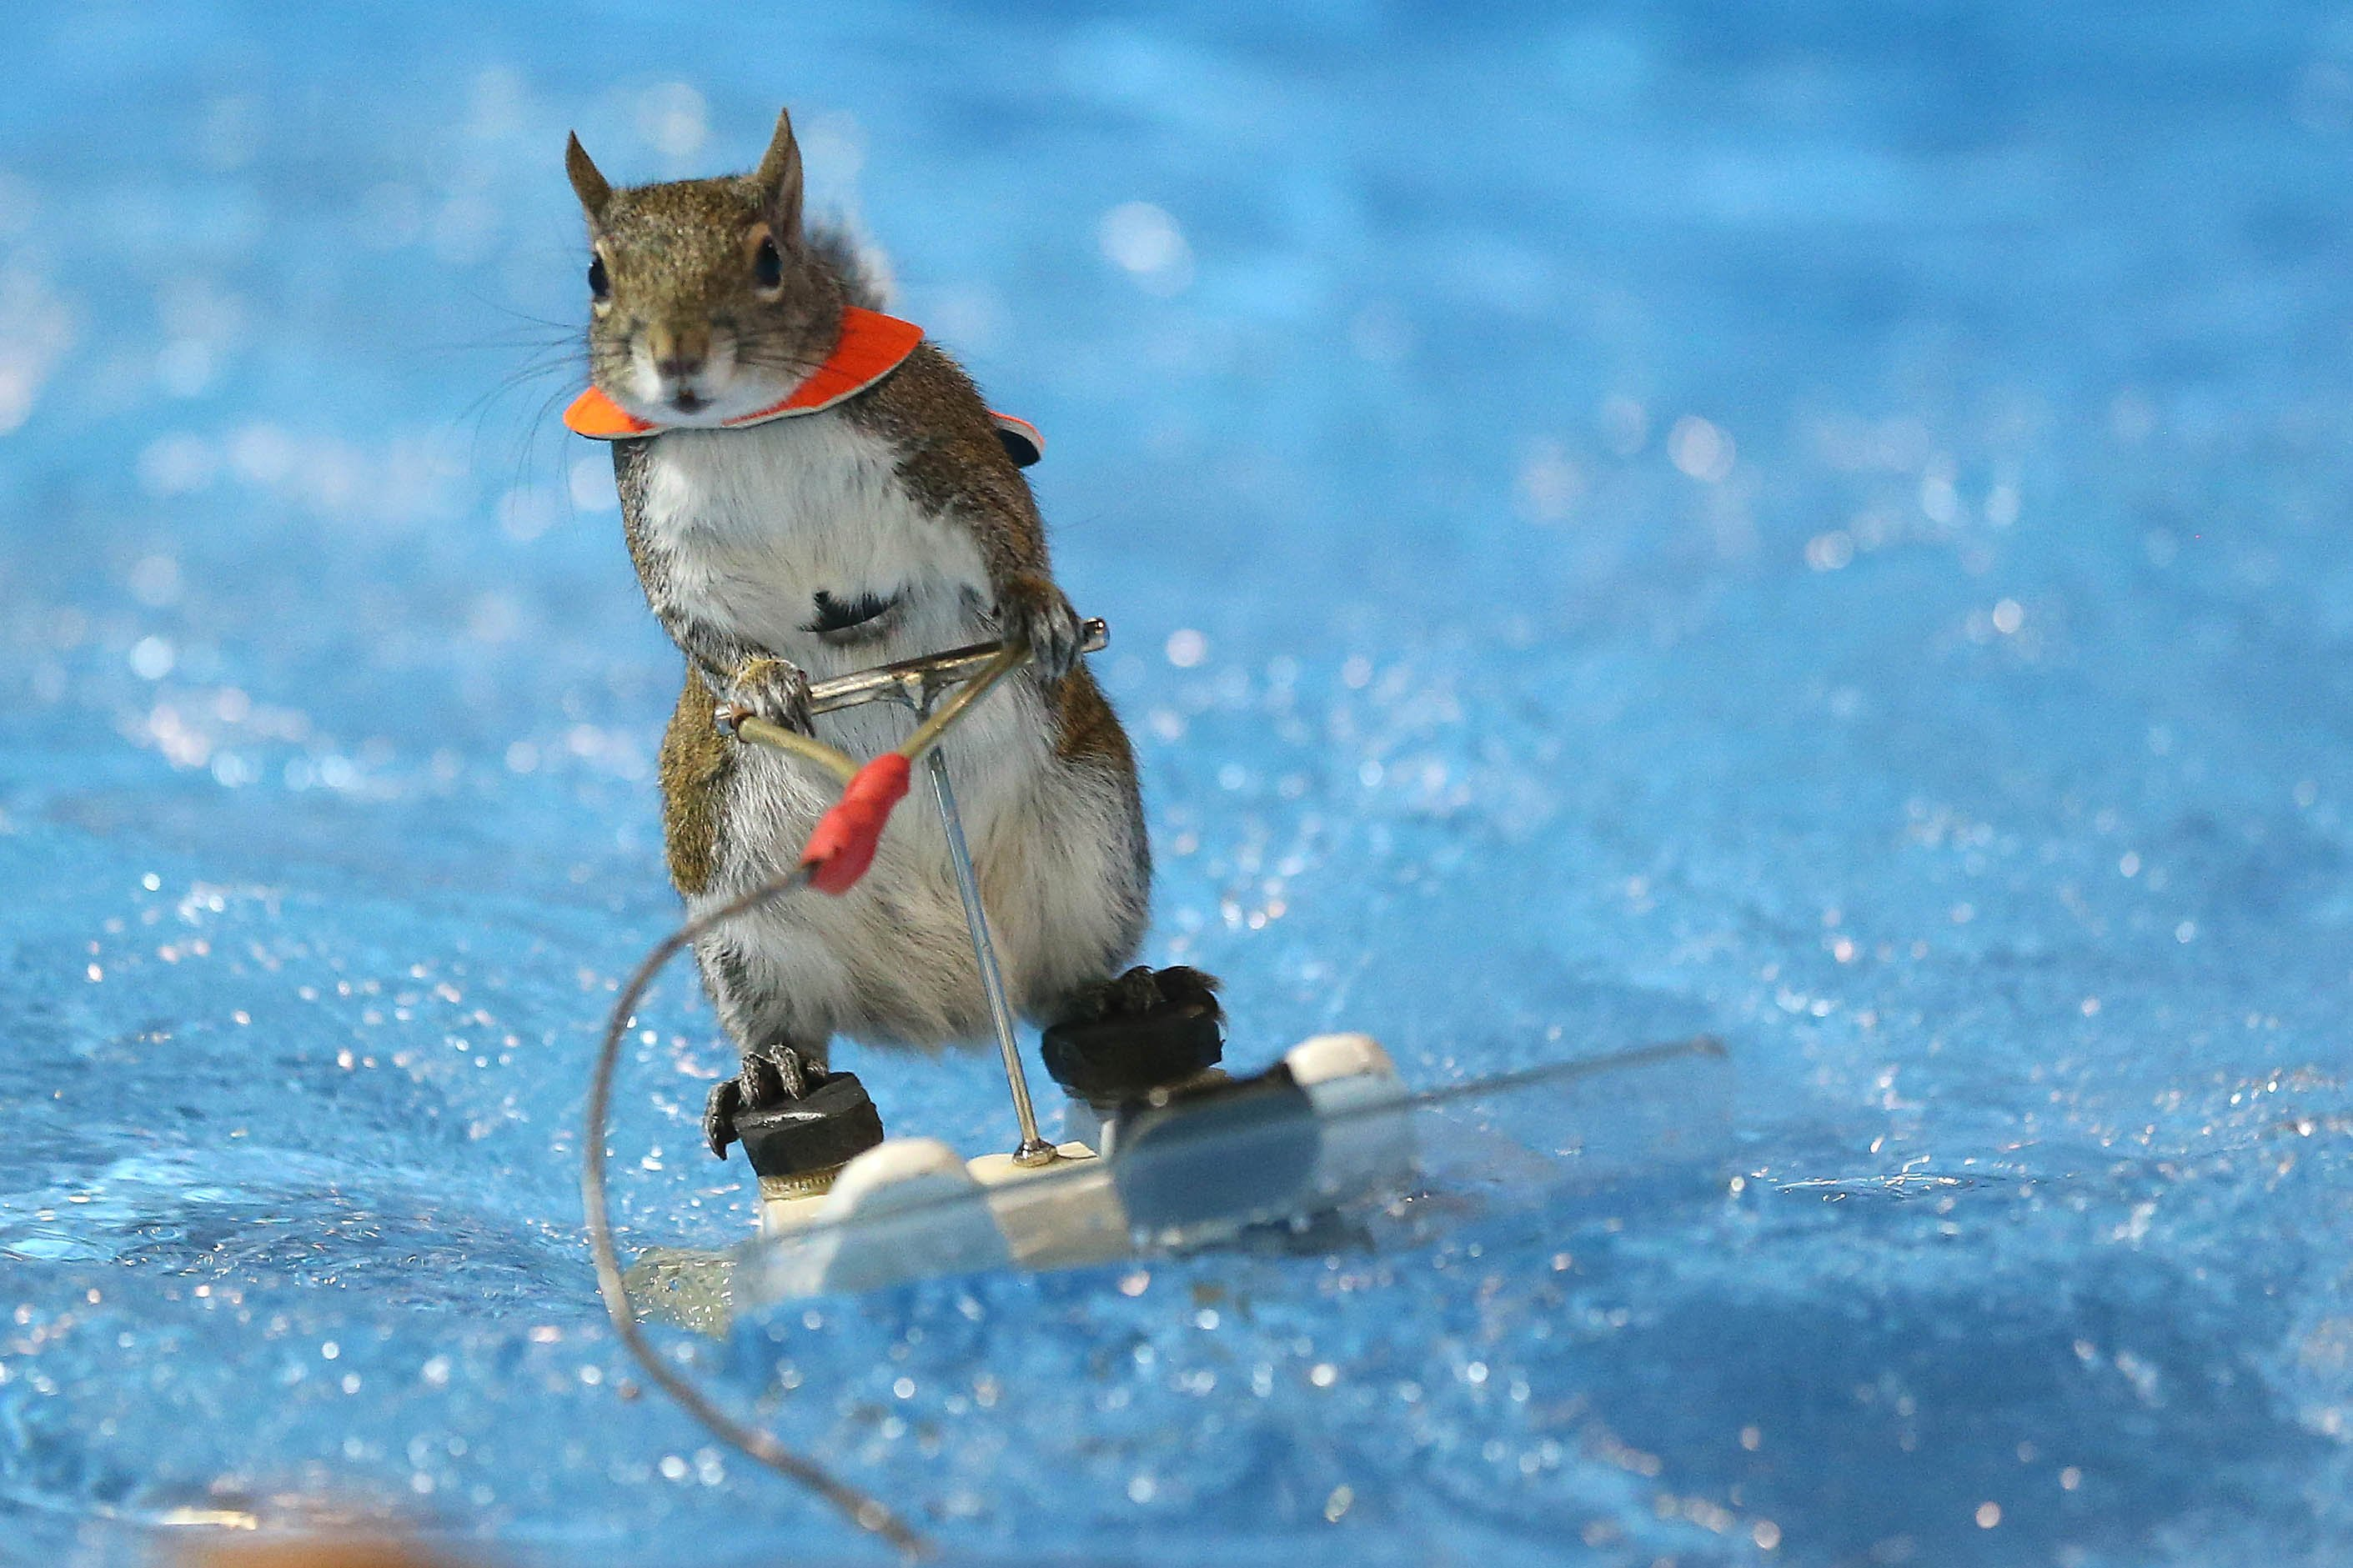 Twiggy the Water Skiing Squirrel gets in some practice runs before her shows at the Toronto International Boat Show in Toronto, Canada, on Jan. 7, 2016.